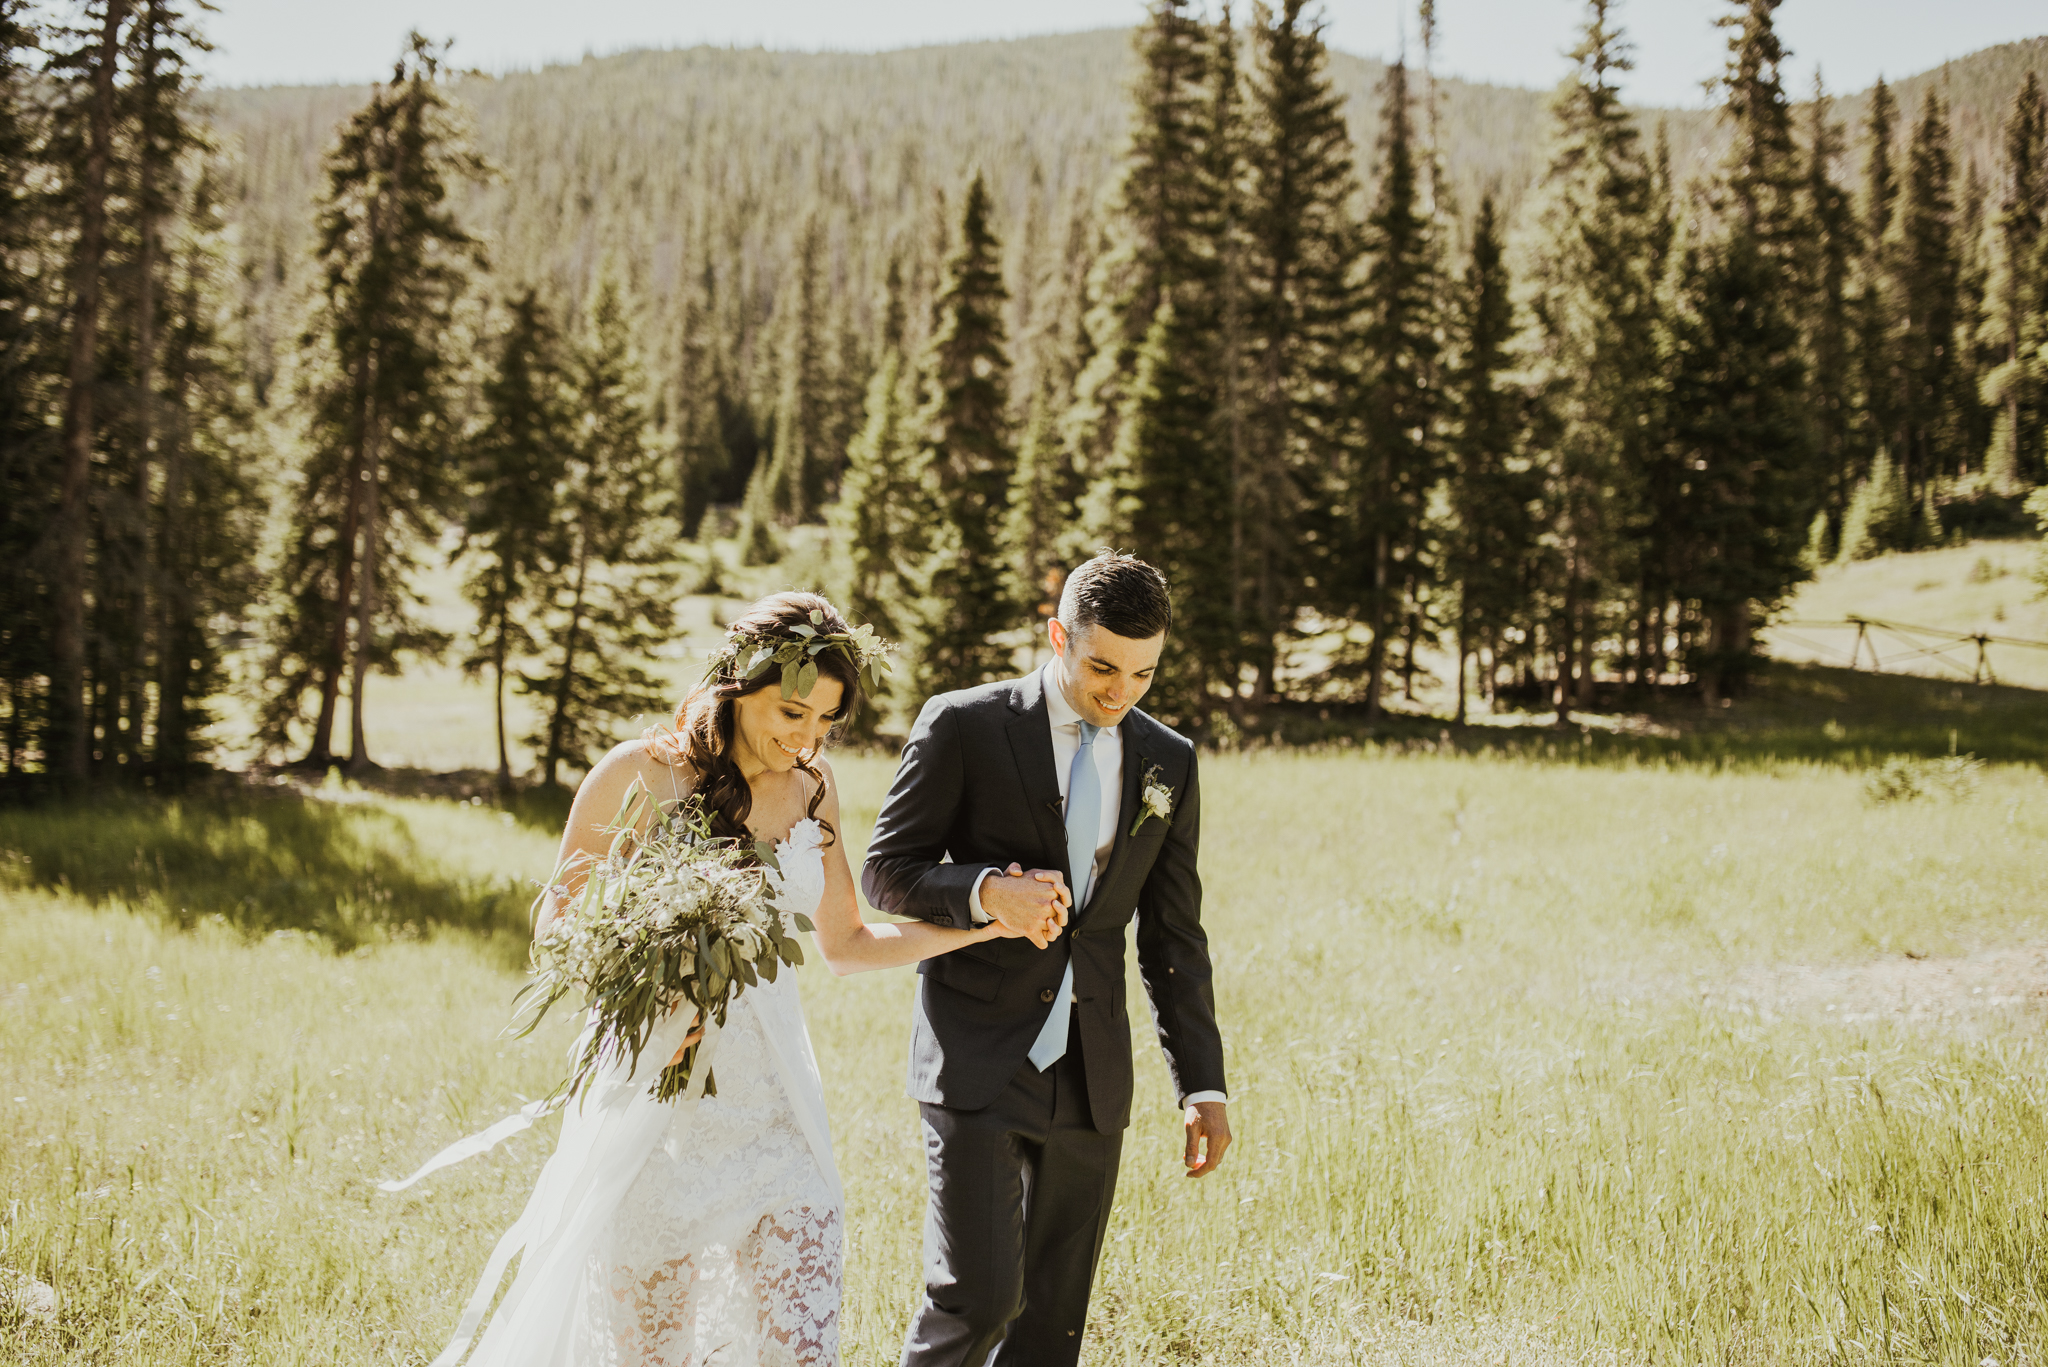 ©Isaiah + Taylor Photography - Estes National Park Adventure Elopement, Colorado Rockies-51.jpg